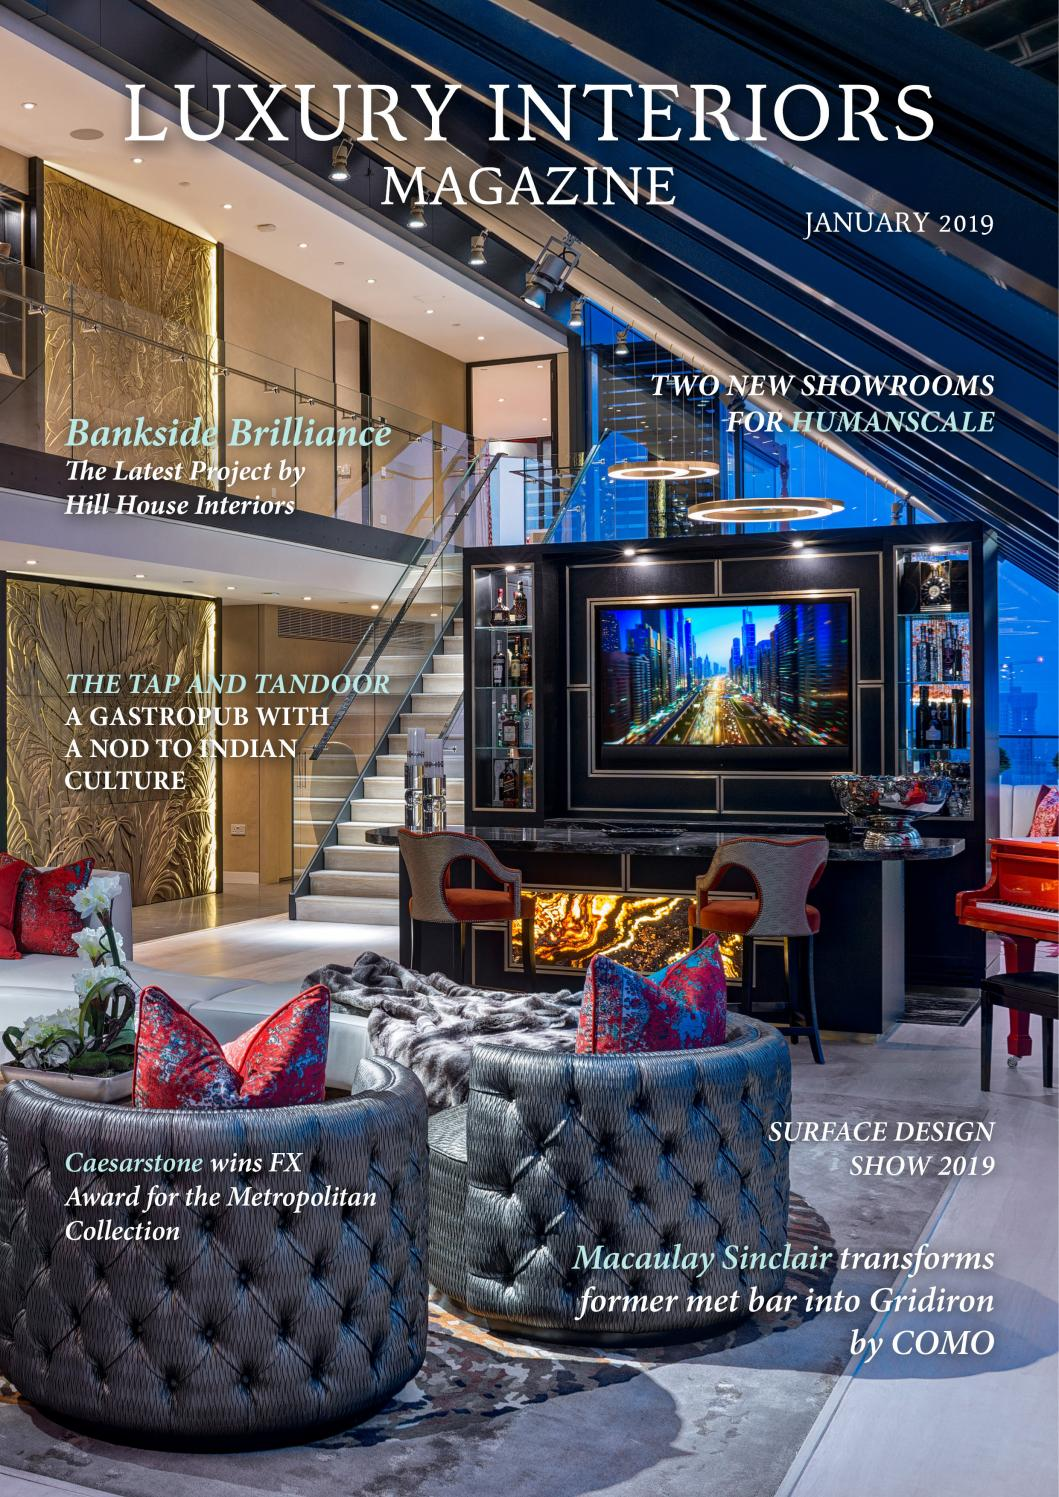 Interior Design Homes Winter 2019: January 2019 By Lapthorn Media